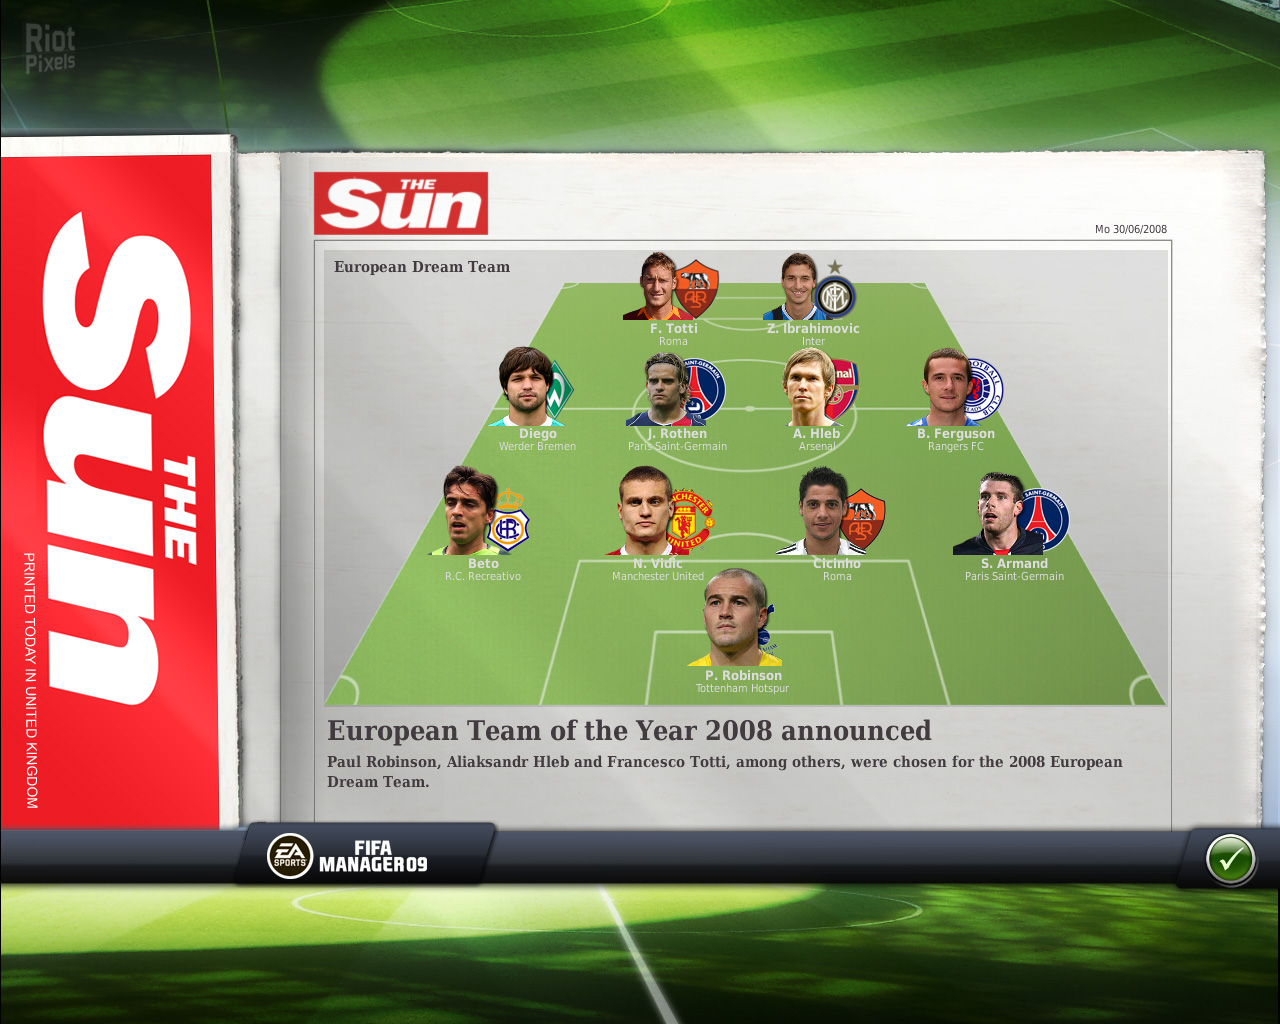 Fifa soccer 09 brings back eas soccer series for another year with updated rosters, improved graphics